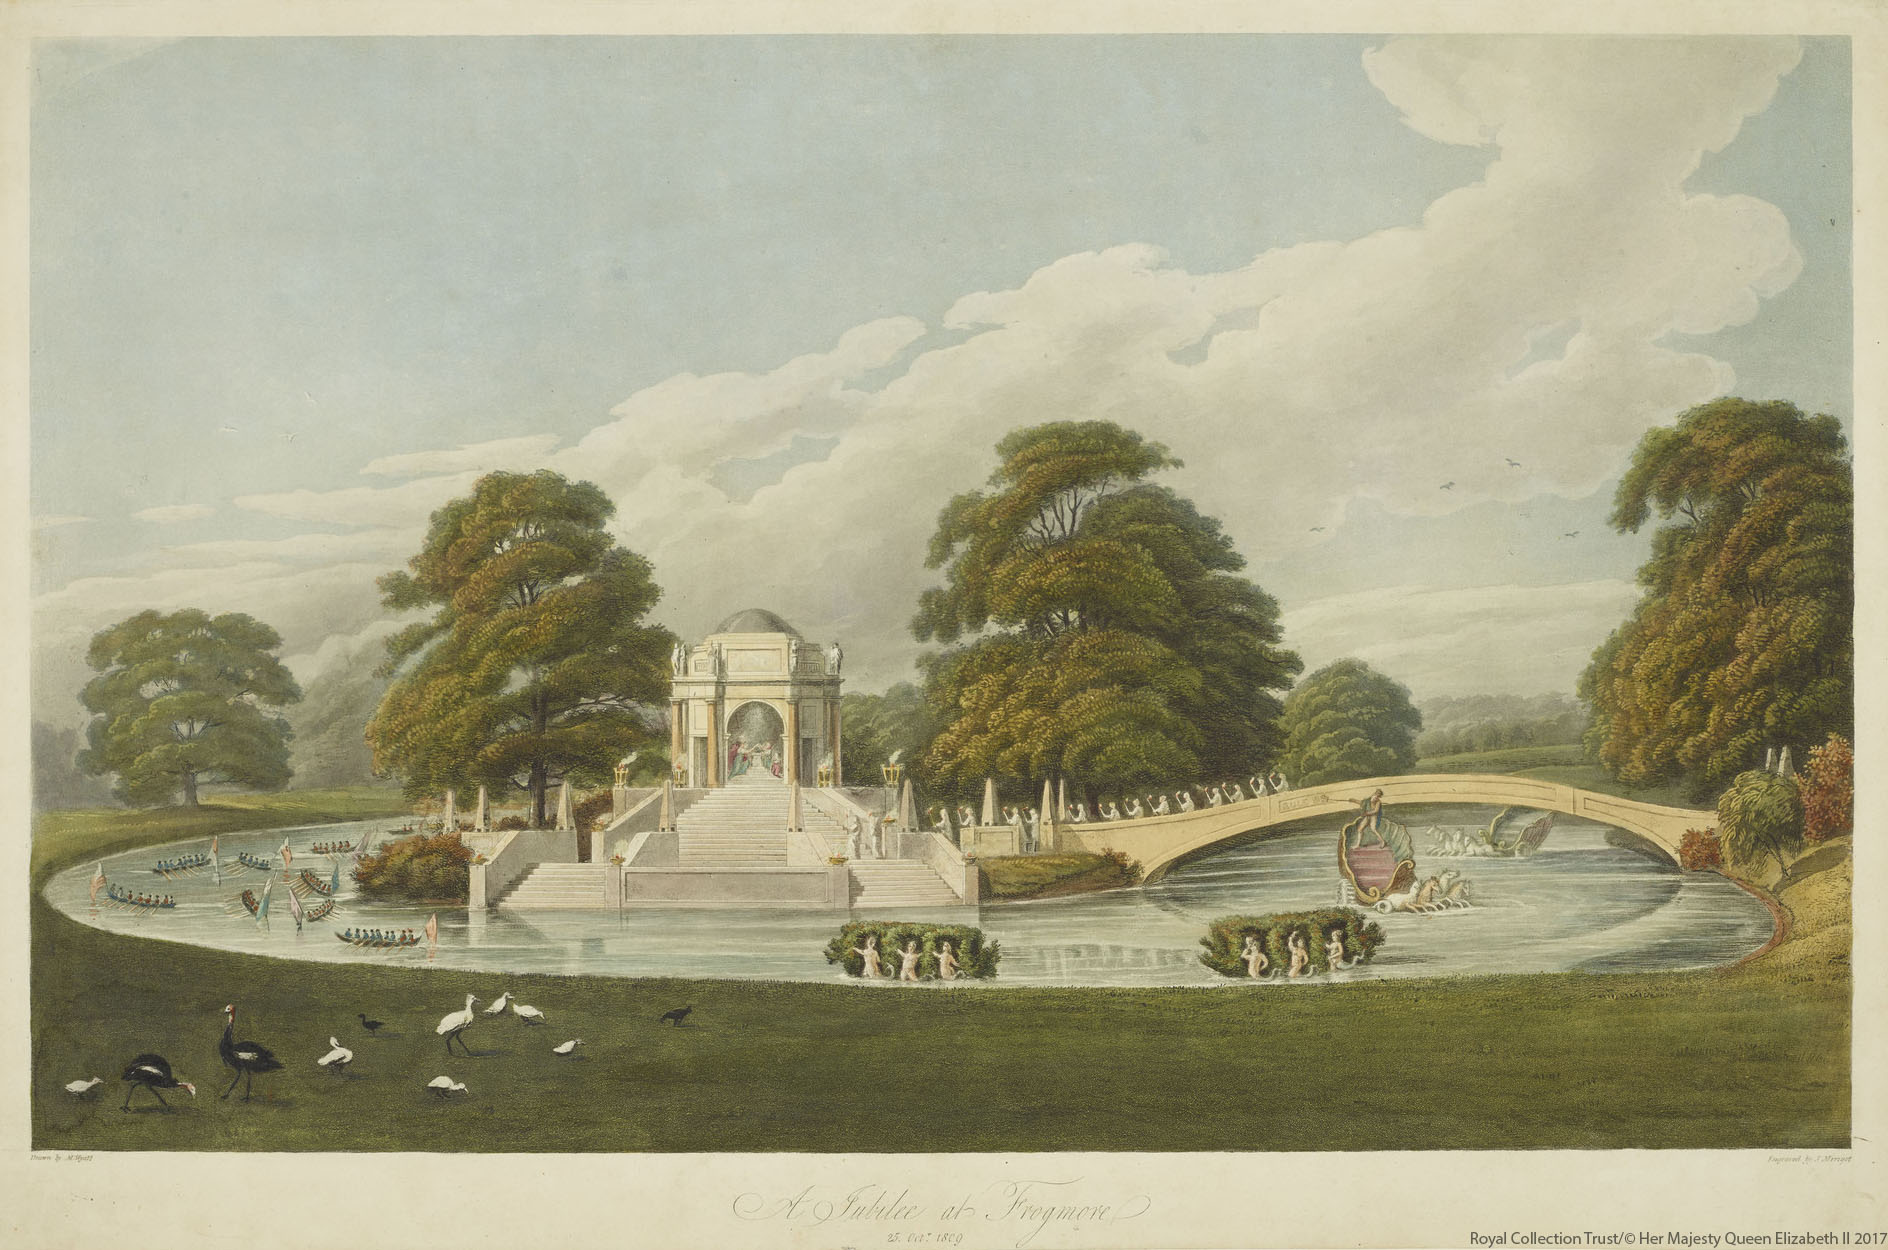 Frogmore House in 1809